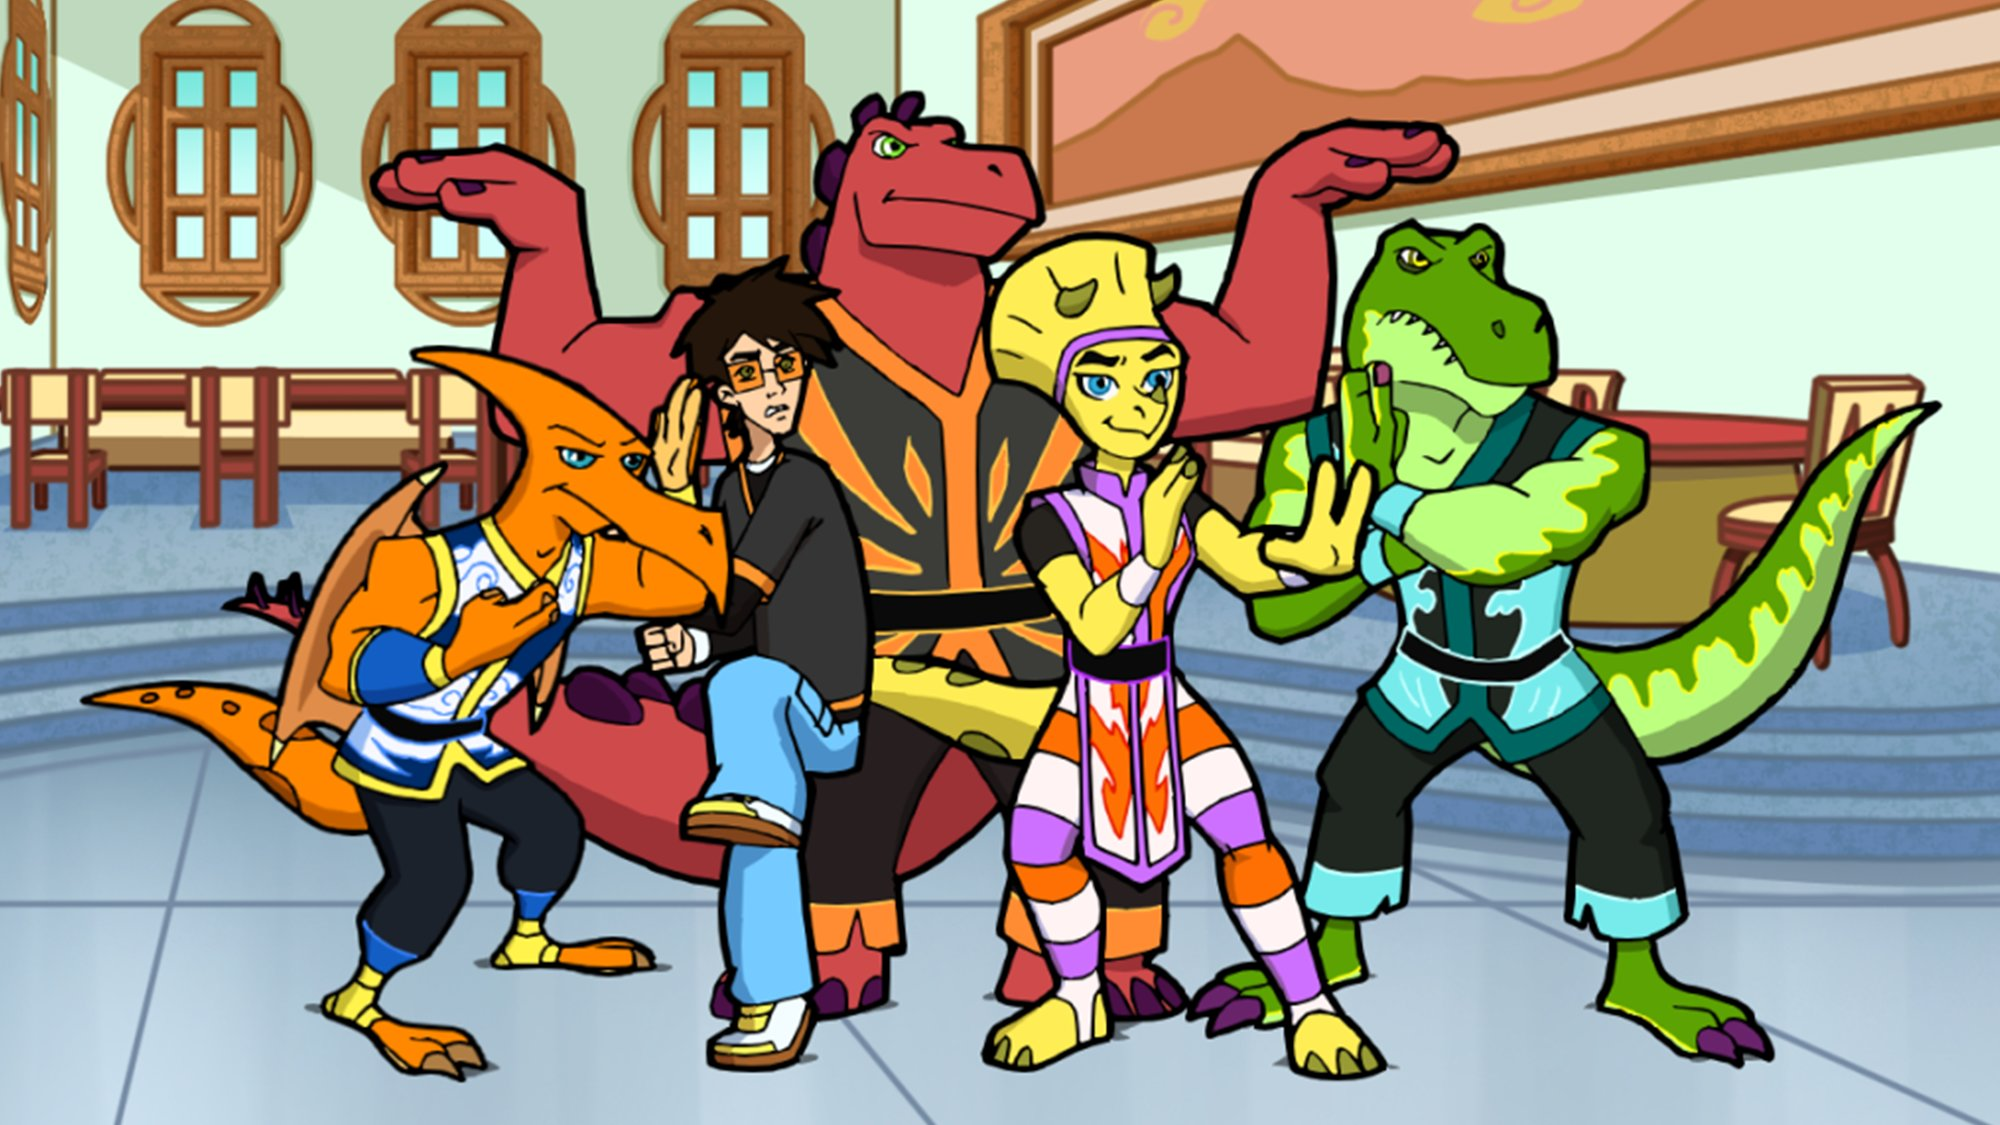 KUNG FU DINO POSSE - (Animated Series, Released 2010)With the evil Skor thawed out in modern-day Megalopolis, it is up to the heroic, recently defrosted Kung Fu Dino Posse to stop him and his bumbling brother from destroying the city.  Brent Hirose voices Jet, one of our four prehistoric kung-fu dino heroes. You can watch now on CraveTV.